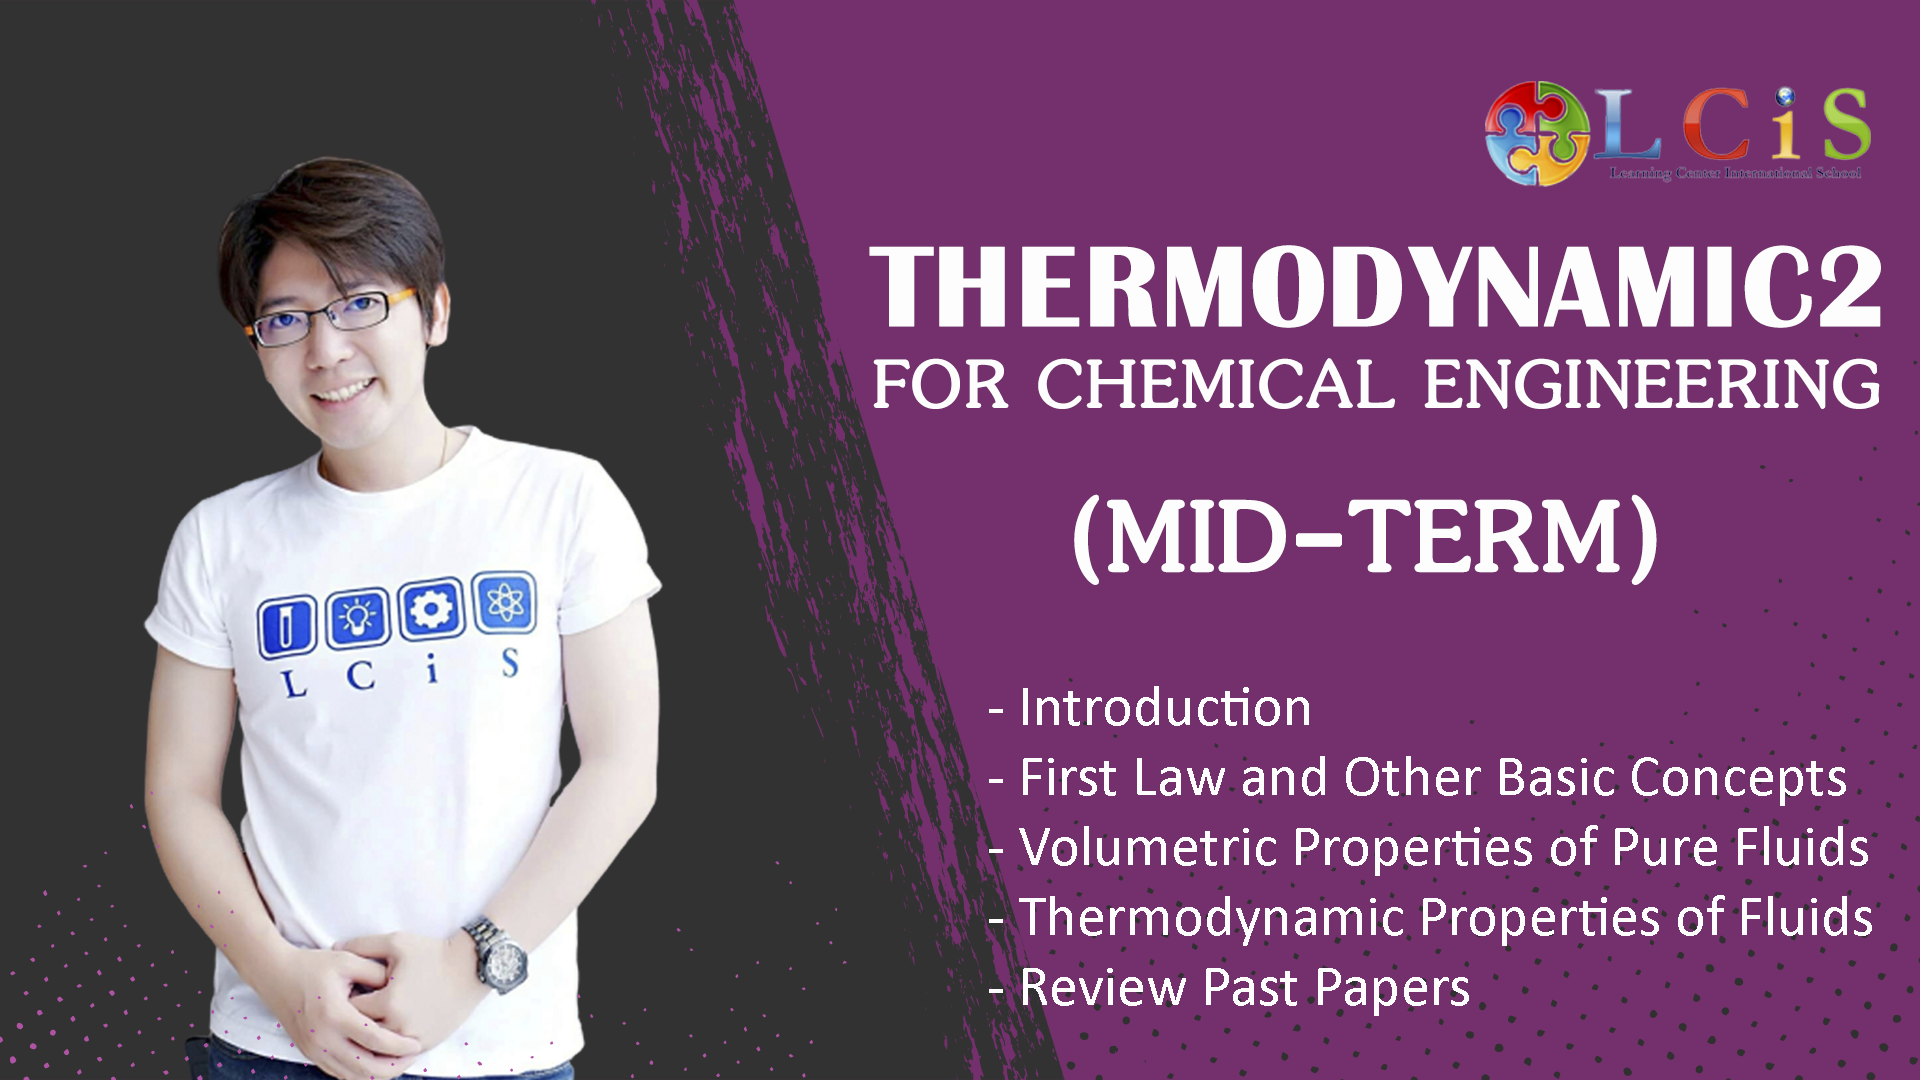 Thermodynamic2 for Chemical Engineering - Mid Term